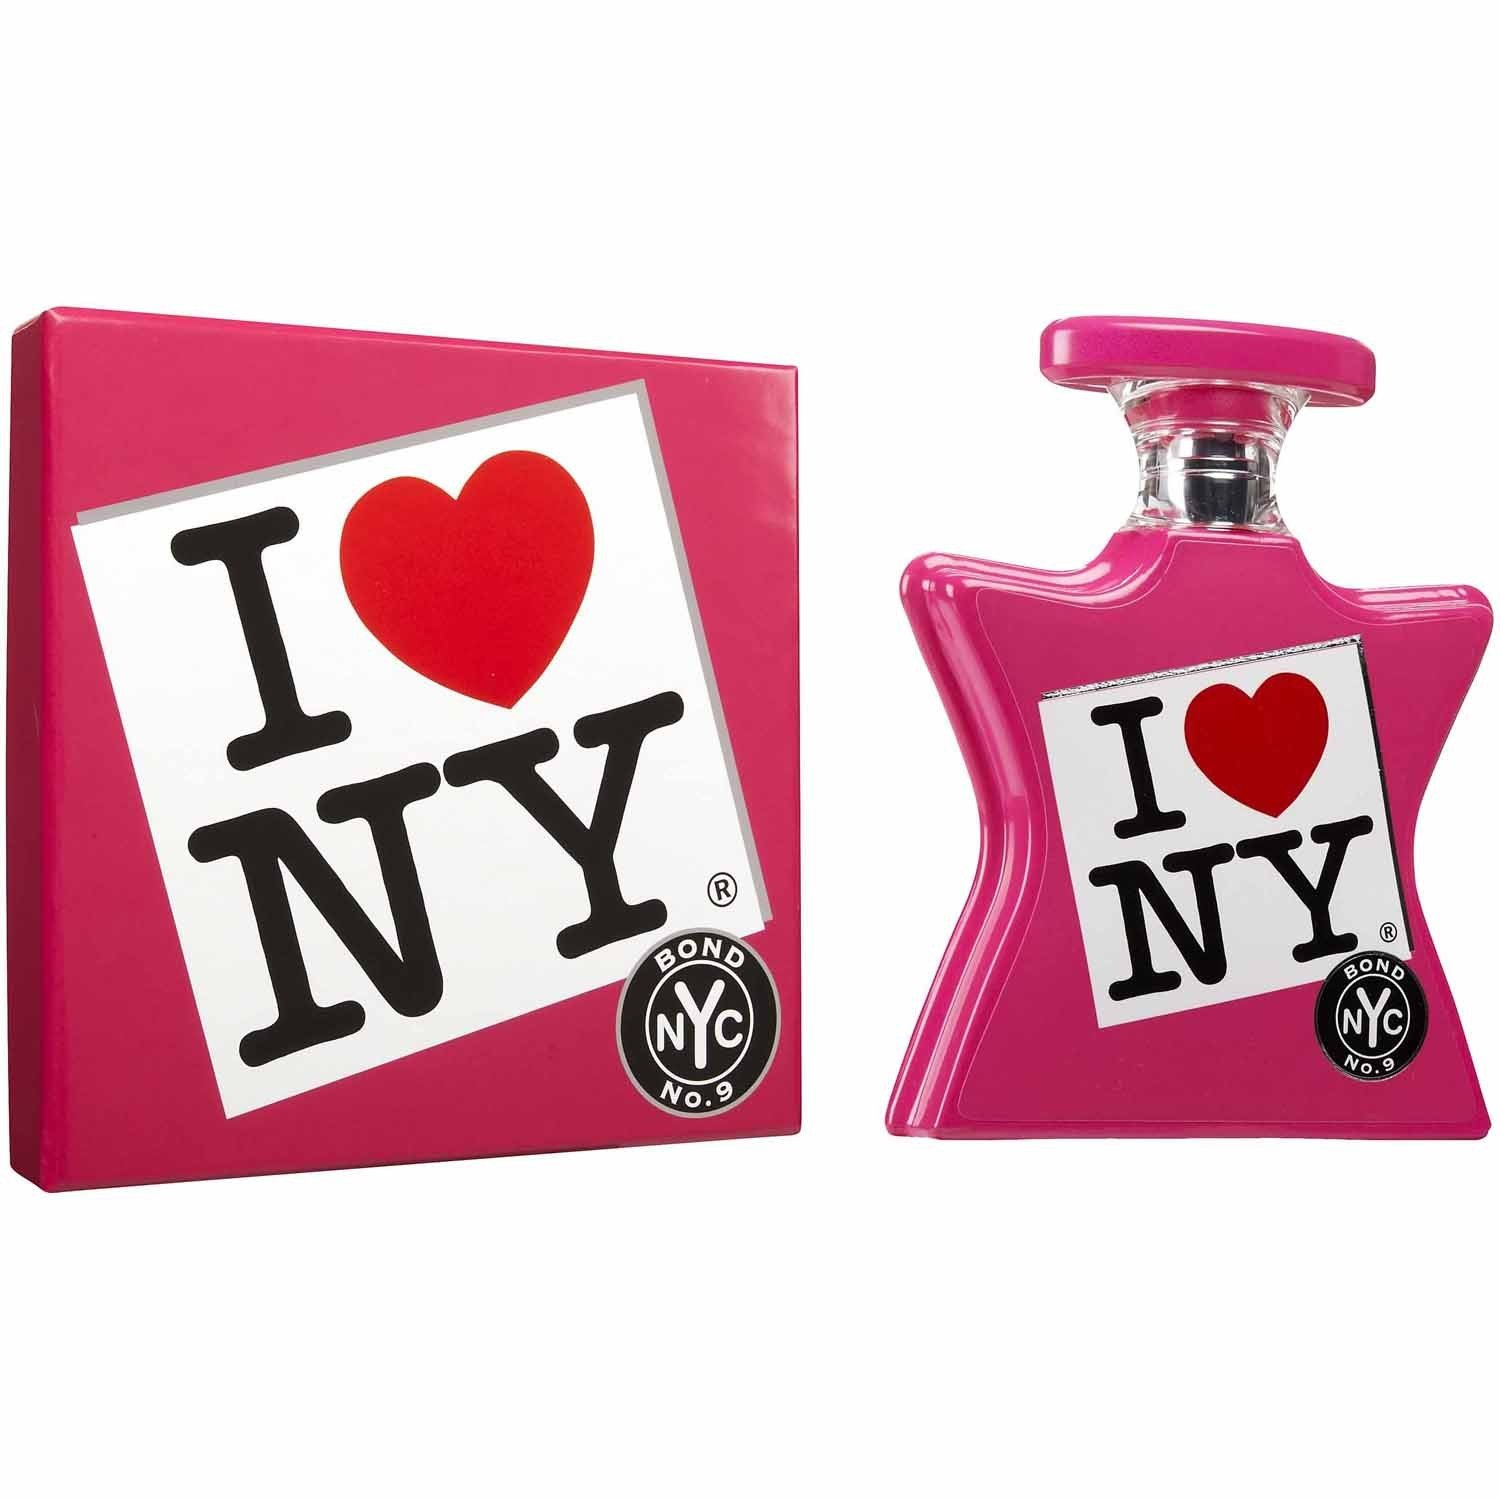 Bond No 9 I Love New York Eau De Parfum Spray for Women, 3.3 Ounce